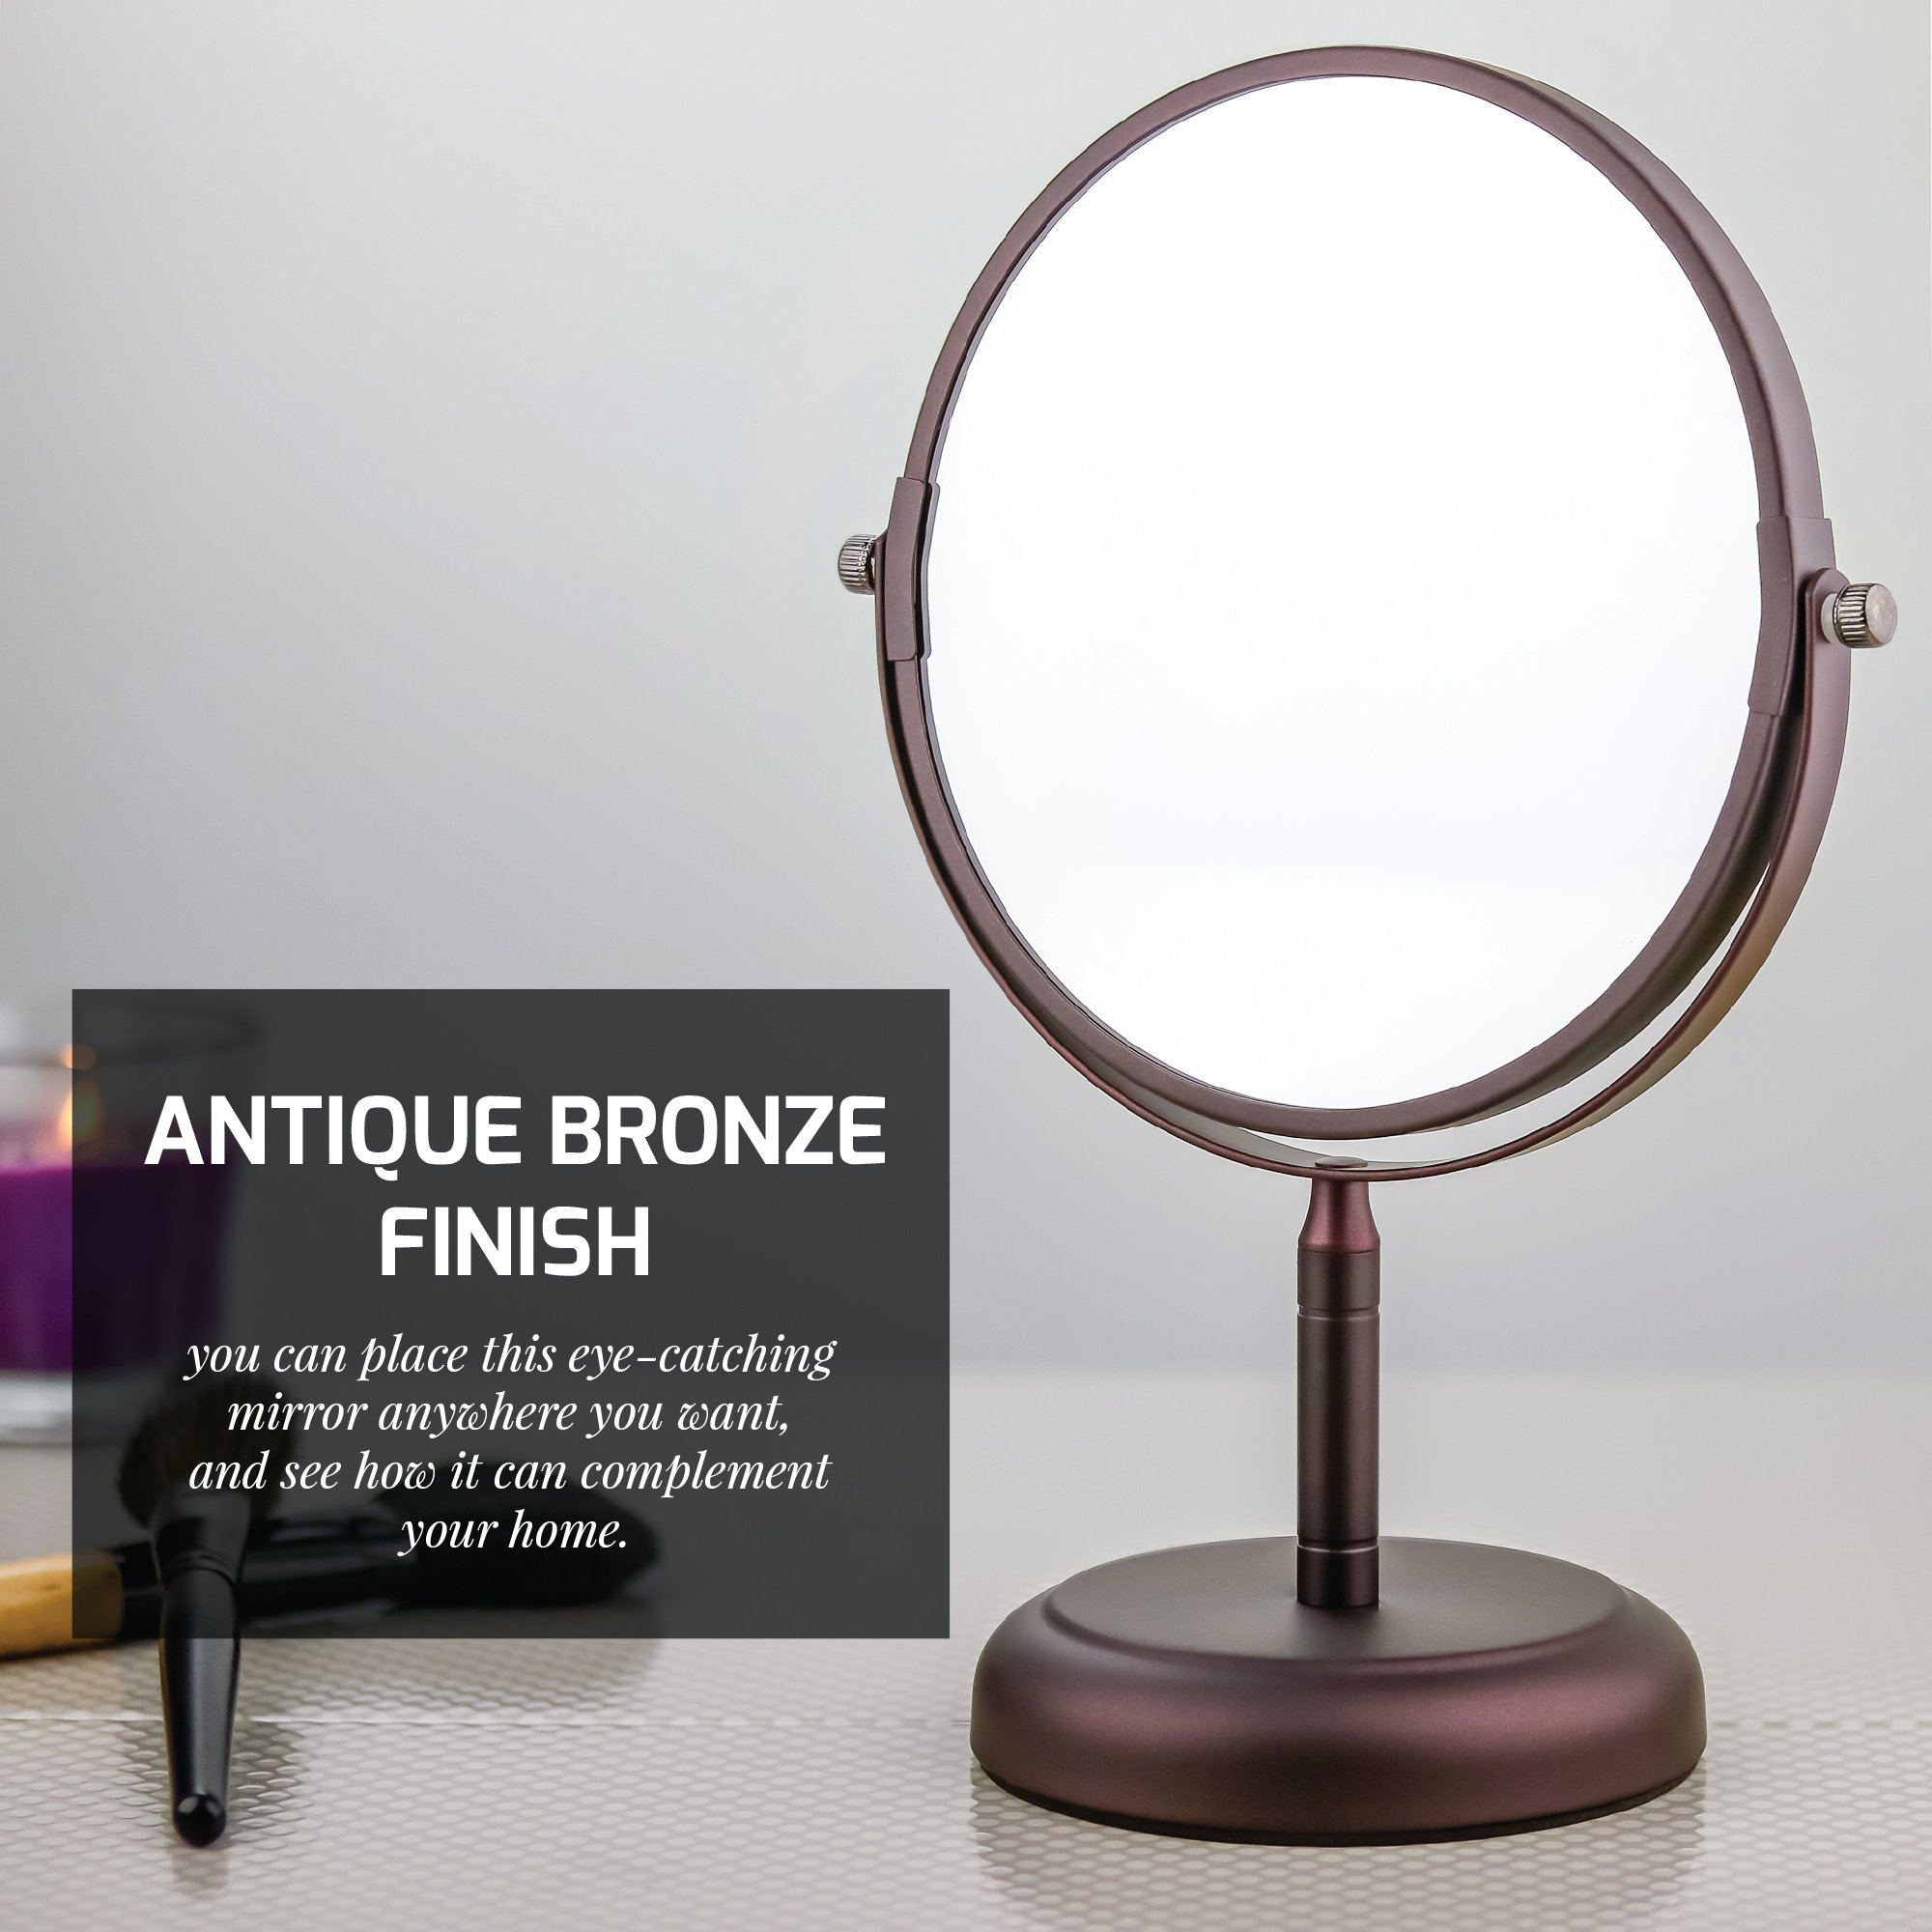 Ovente Round Tabletop Vanity Mirror, 7 Inch, Dual-Sided with 1x/5x magnification, Antique Bronze (MNLDT70ABZ1X5X) by Ovente (Image #2)